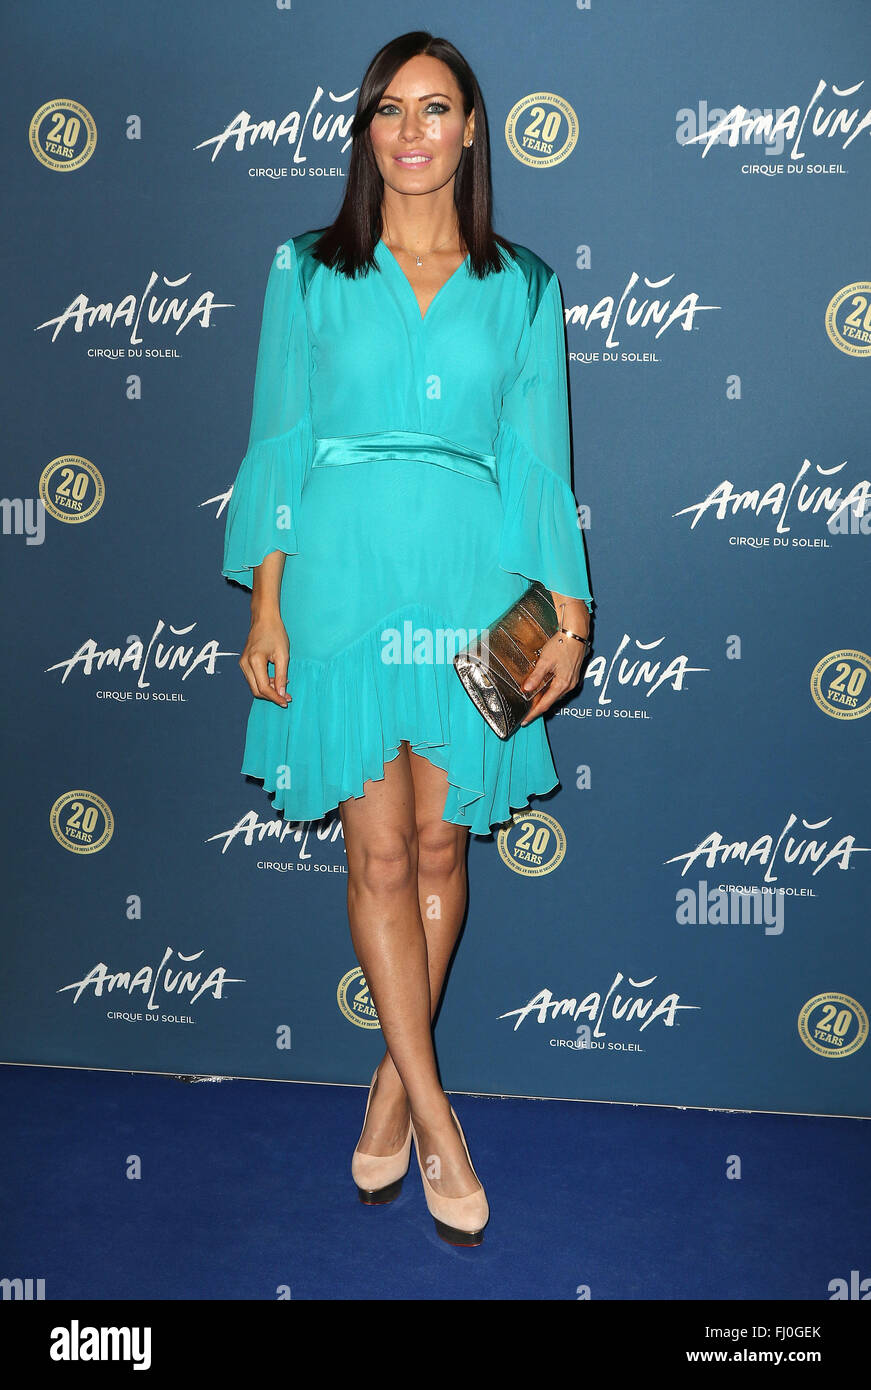 January 19, 2016 - Linzi Stoppard attending 'Cirque du Soleil: Amaluna' press night, Royal Albert Hall in - Stock Image